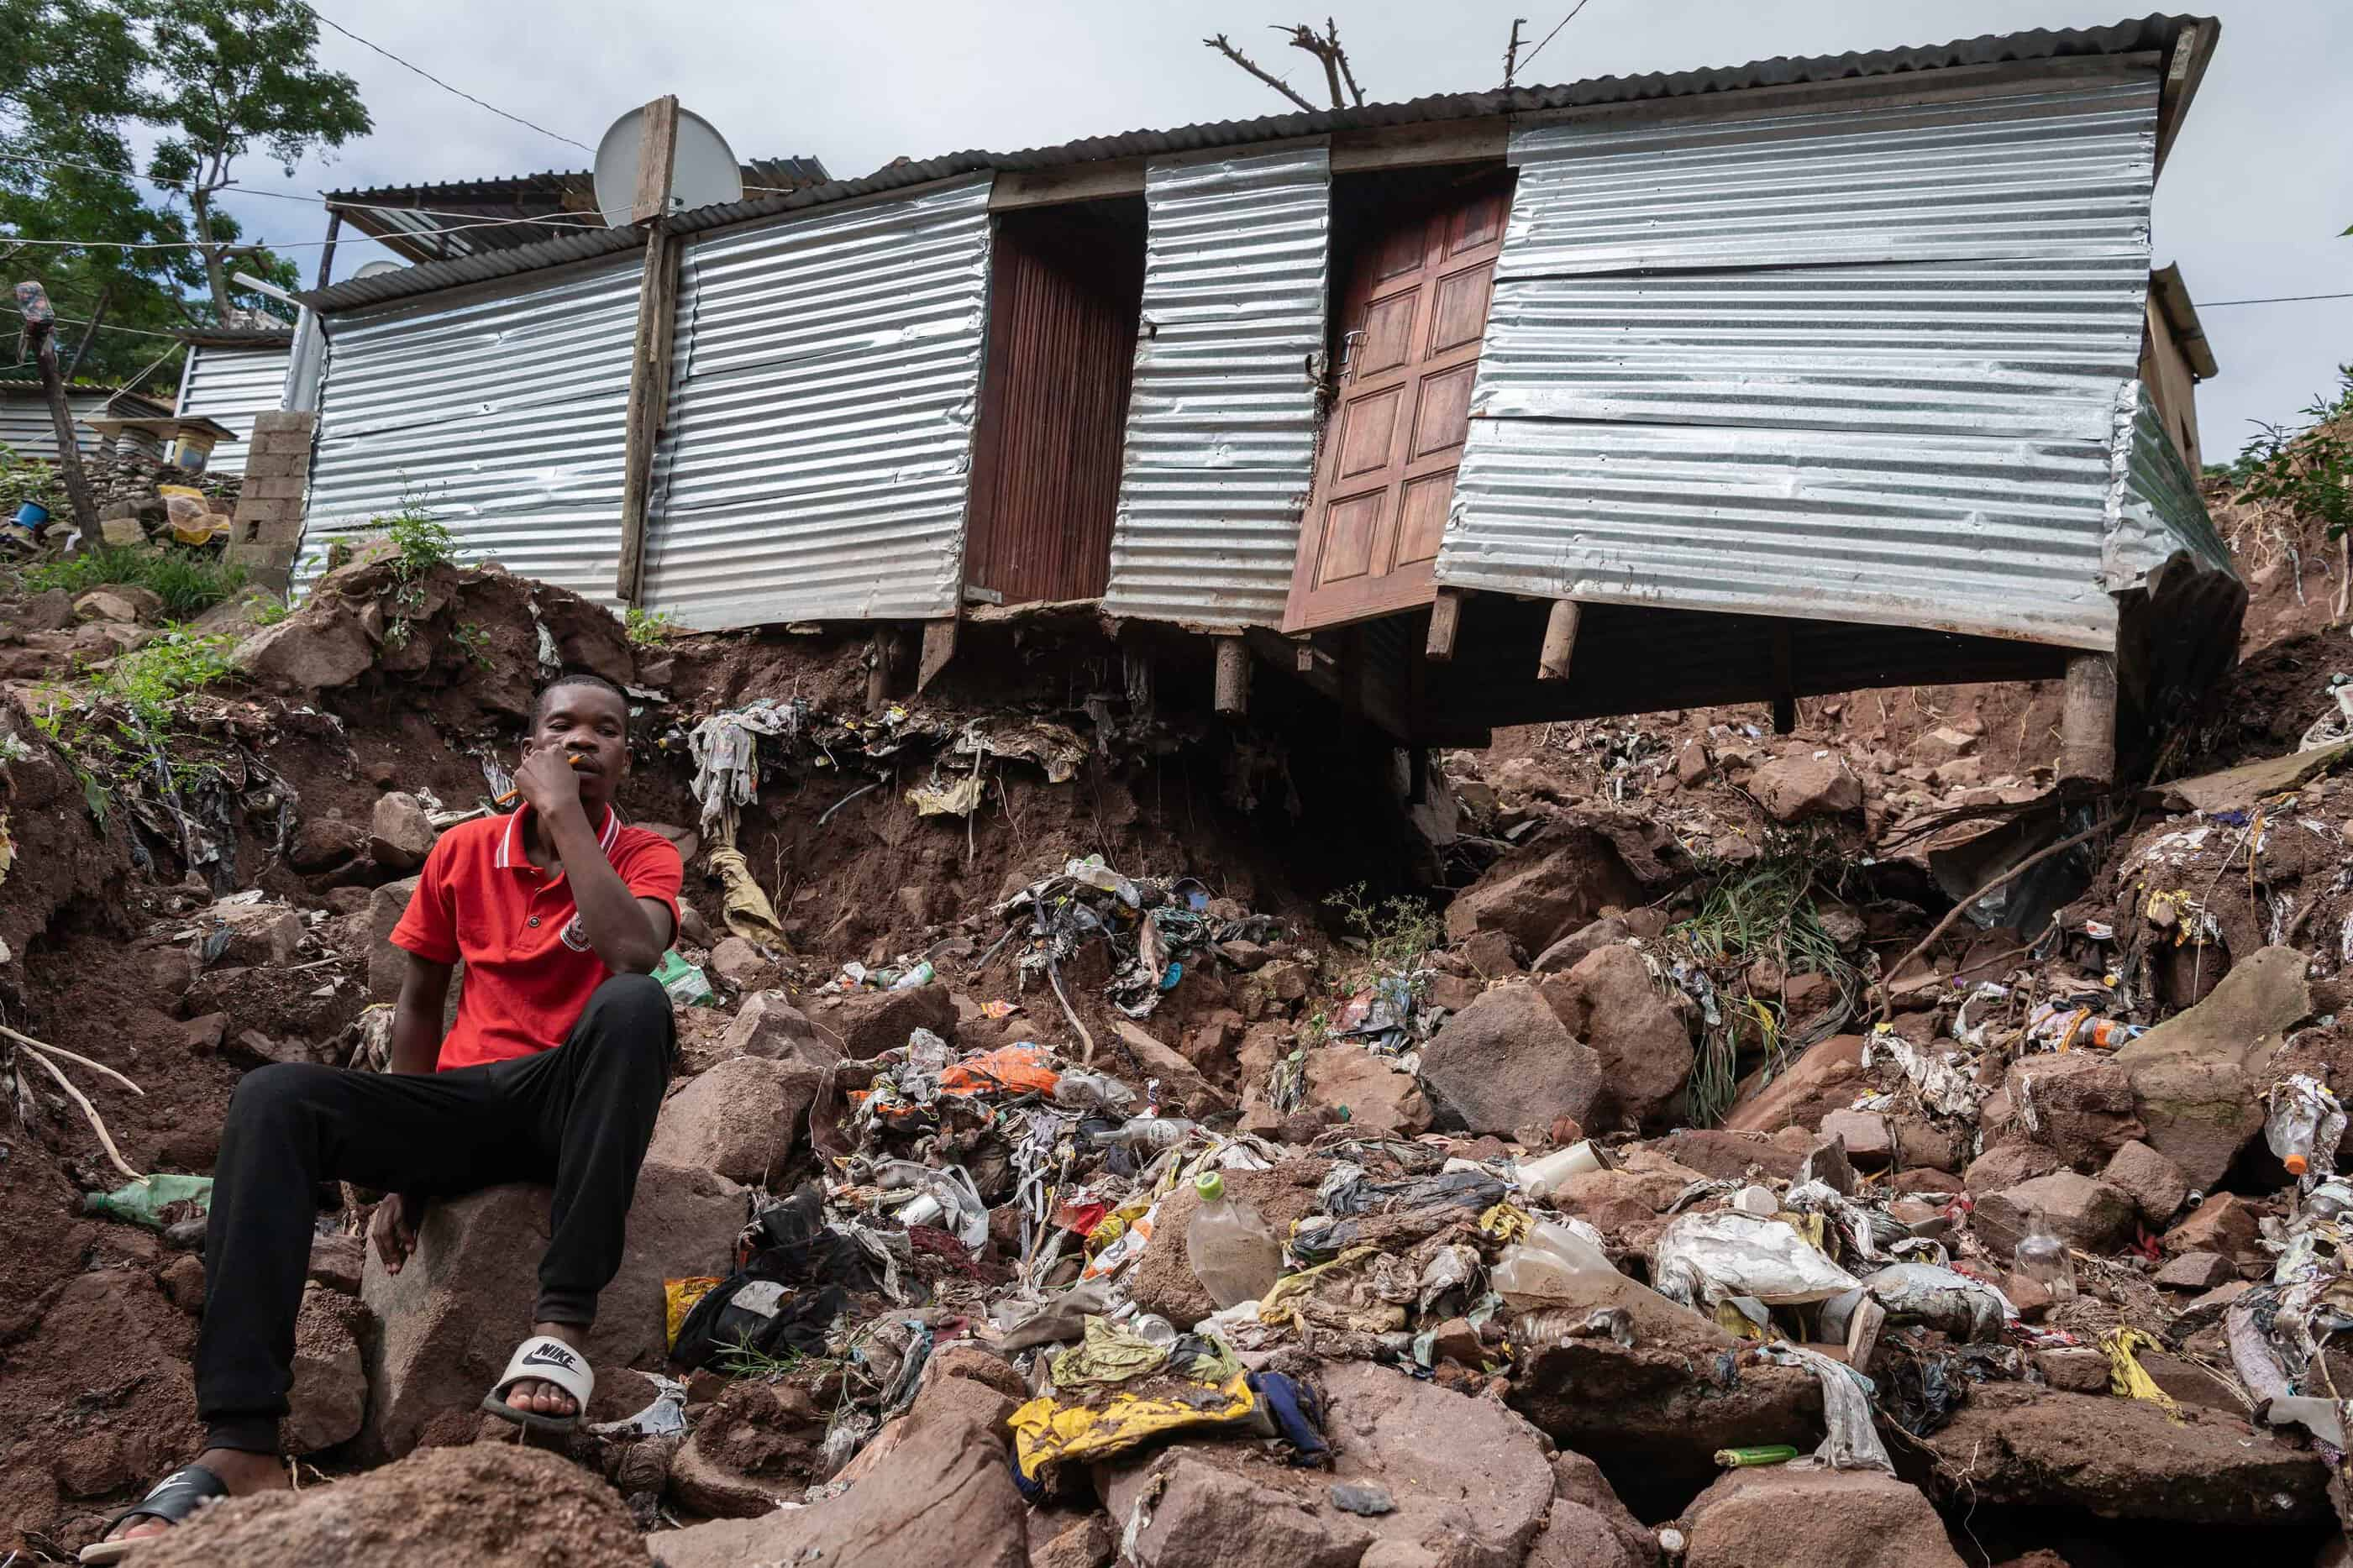 25 April 2019: Goodman Mpendulo Zulu outside his home in the Khokhoba informal settlement in Chatsworth which was badly damaged during the recent floods after the ground beneath his home was swept into the river below.